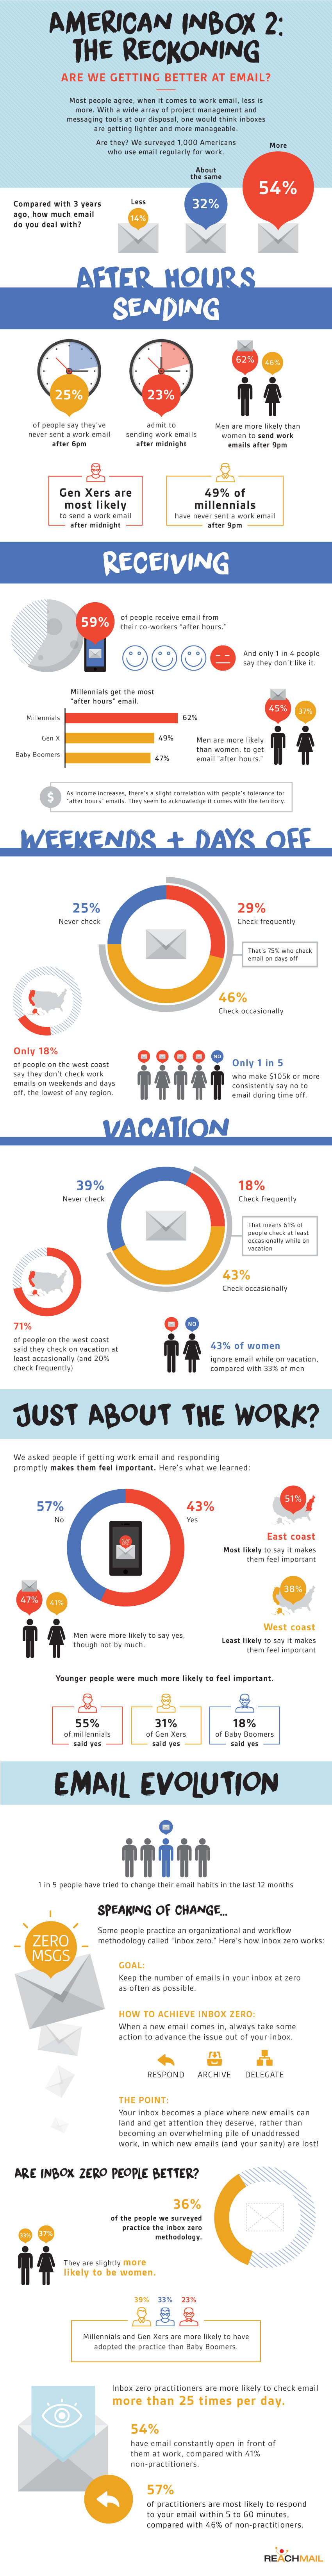 Are We Getting Better At Email? [Infographic]